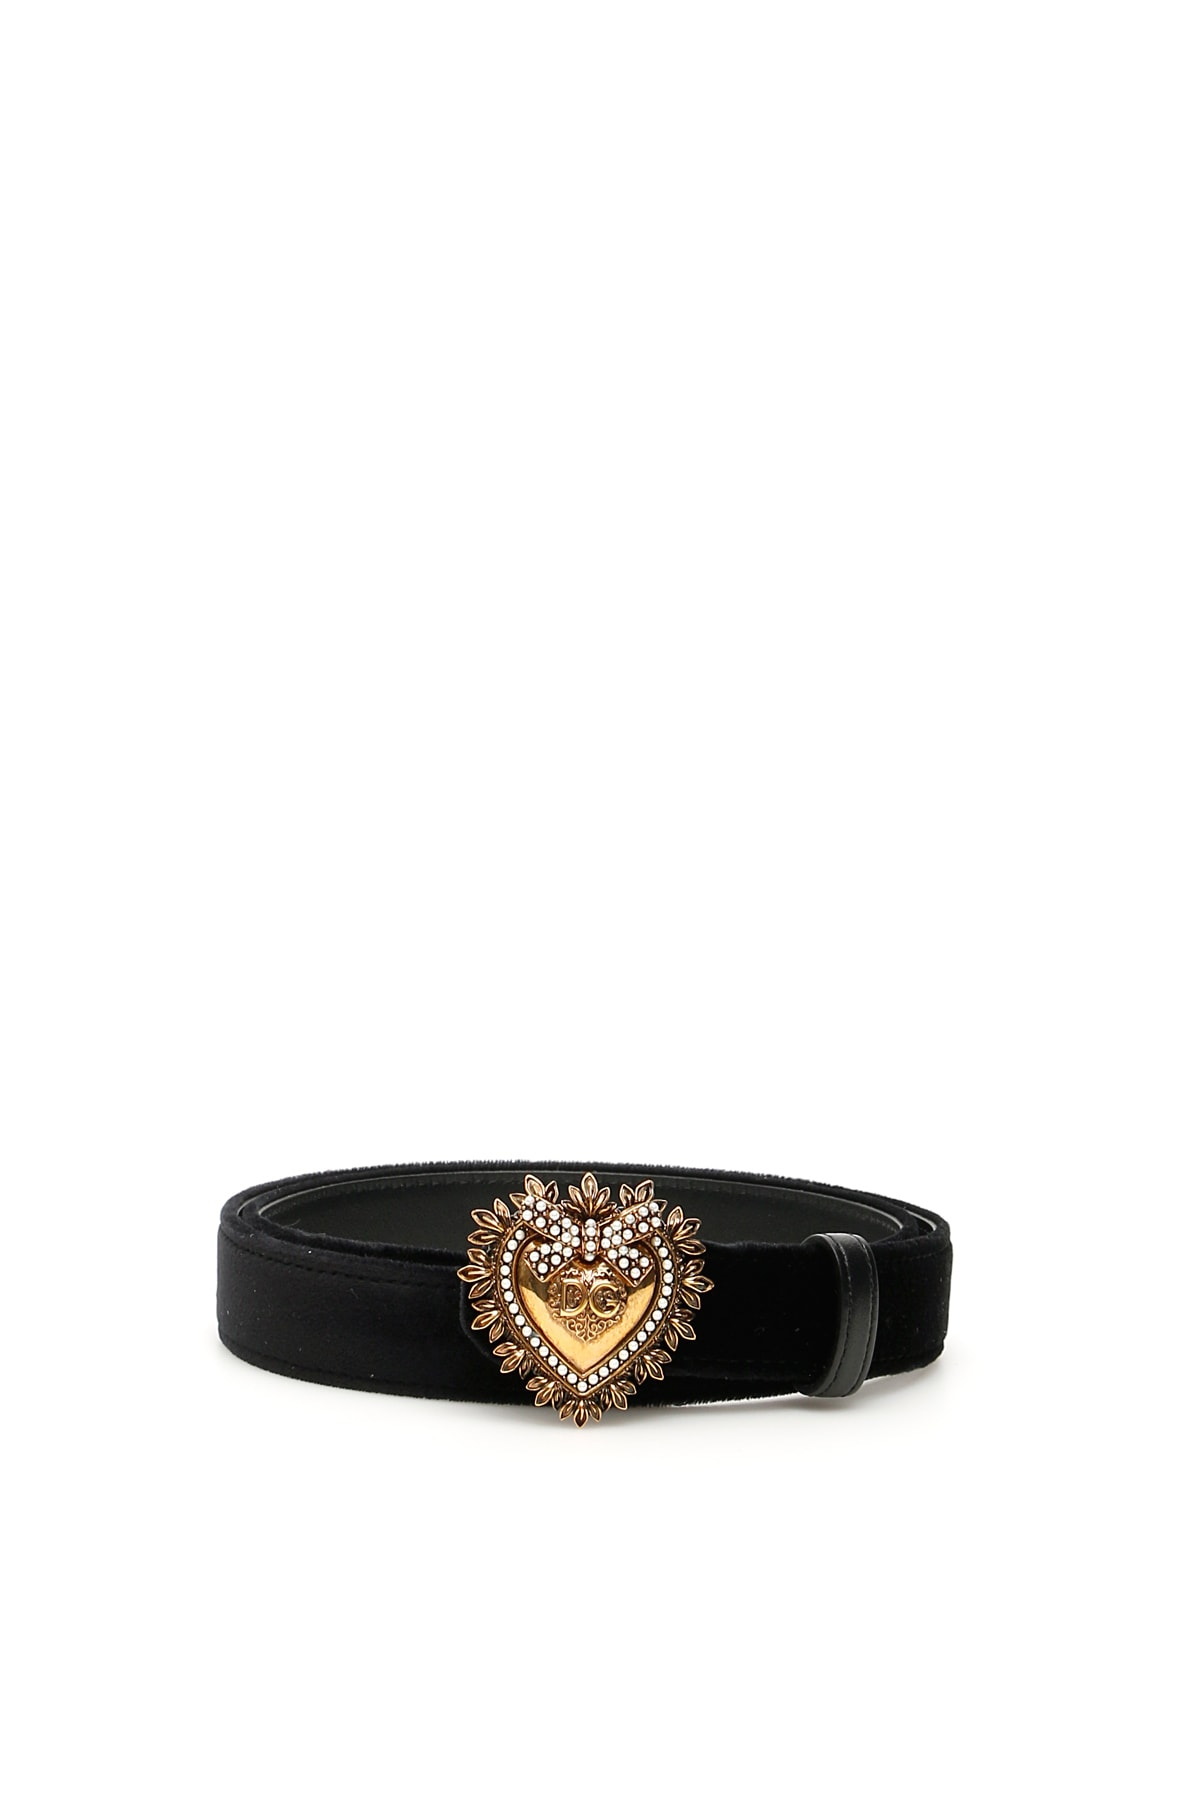 Dolce & Gabbana Devotion Leather Belt With Embellished Buckle In Black